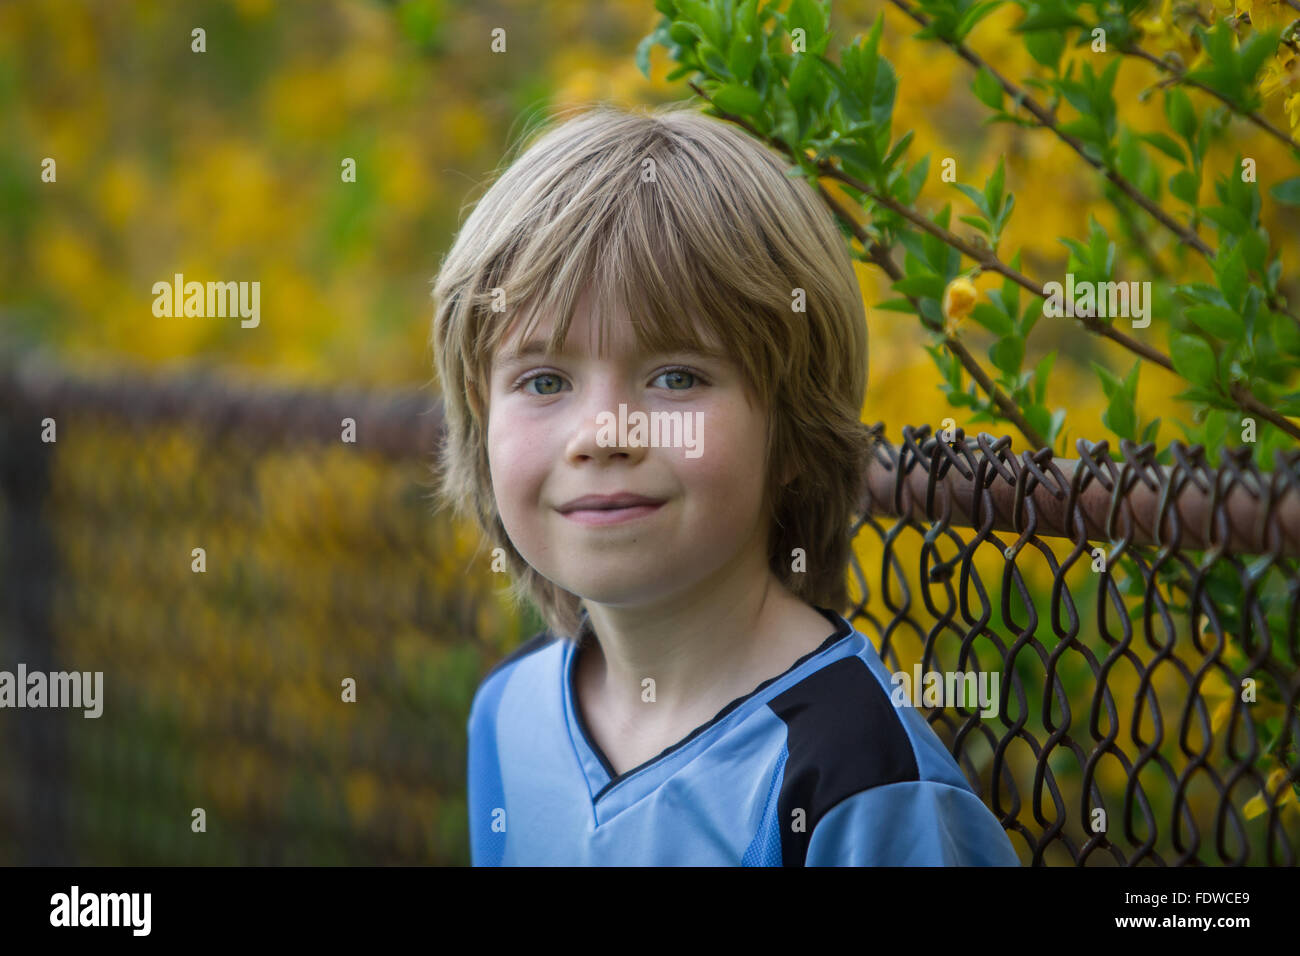 Portrait of a smiling 9 year old boy outdoor - Stock Image